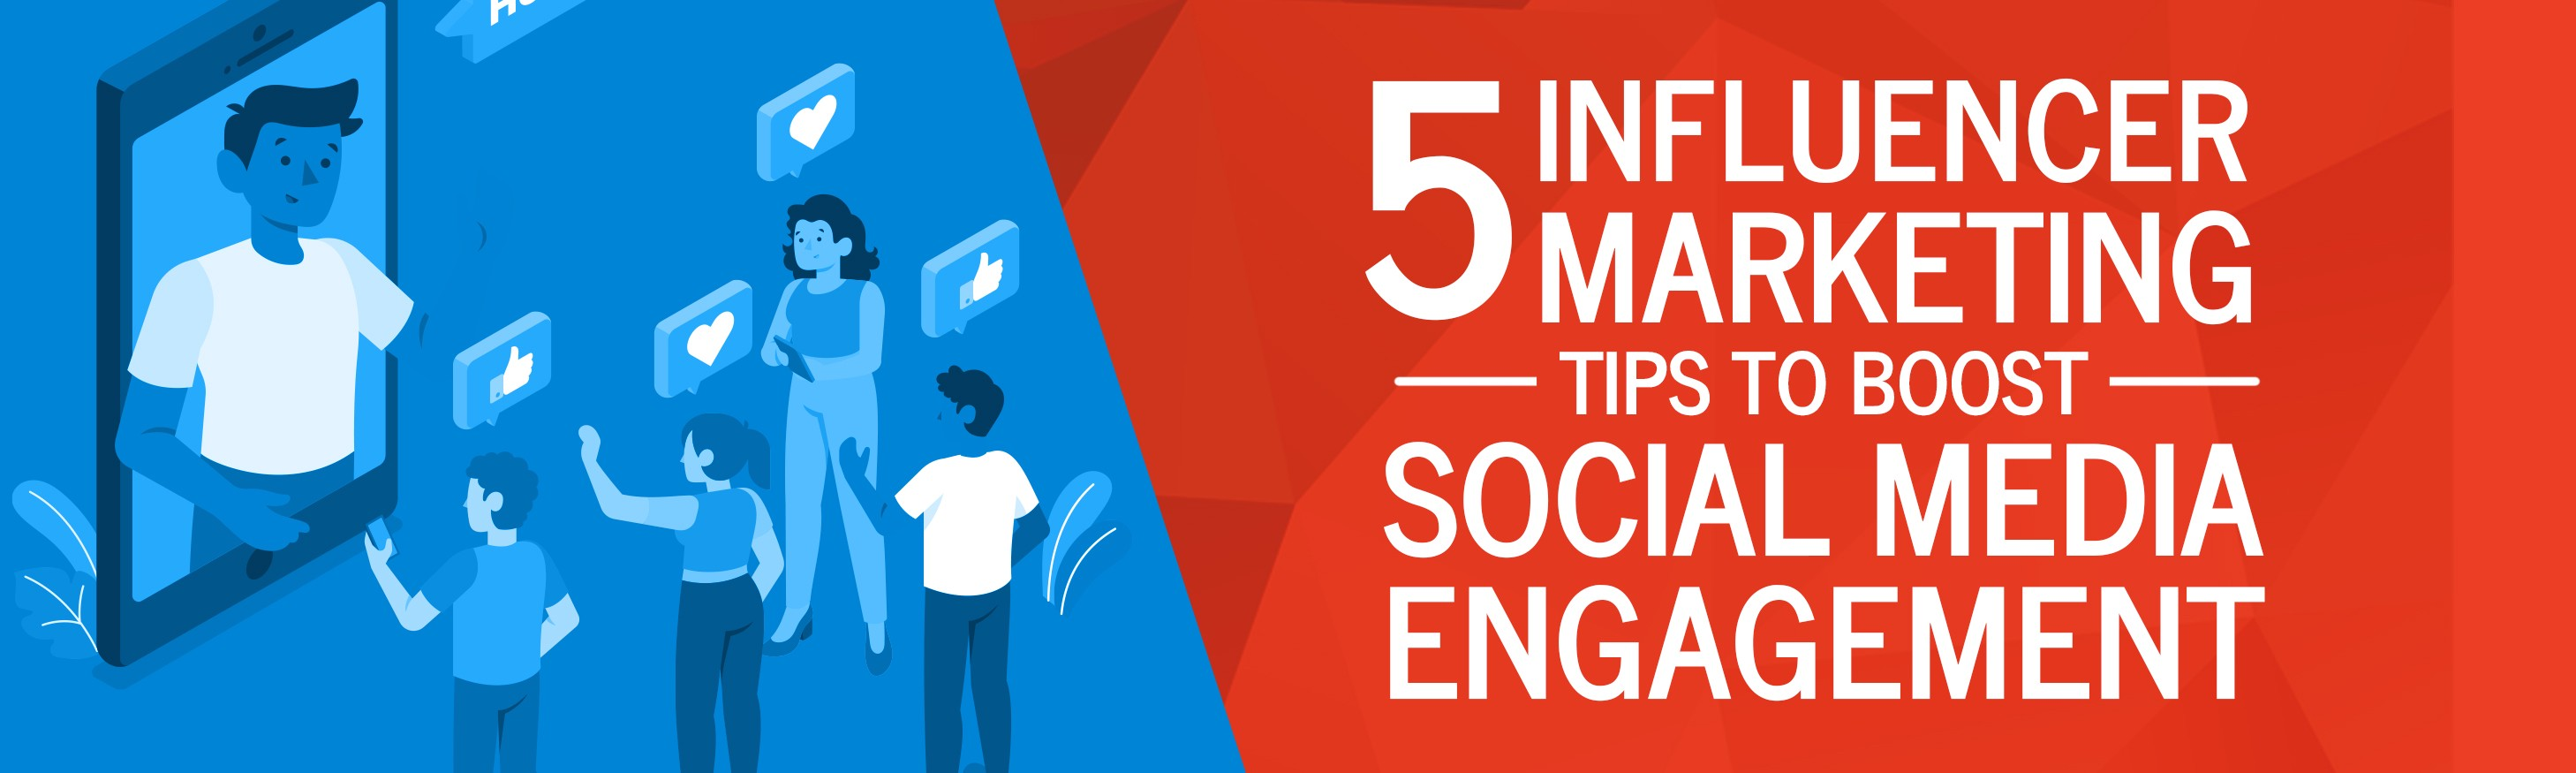 5 Influencer Marketing Tips to Boost Social Media Engagement